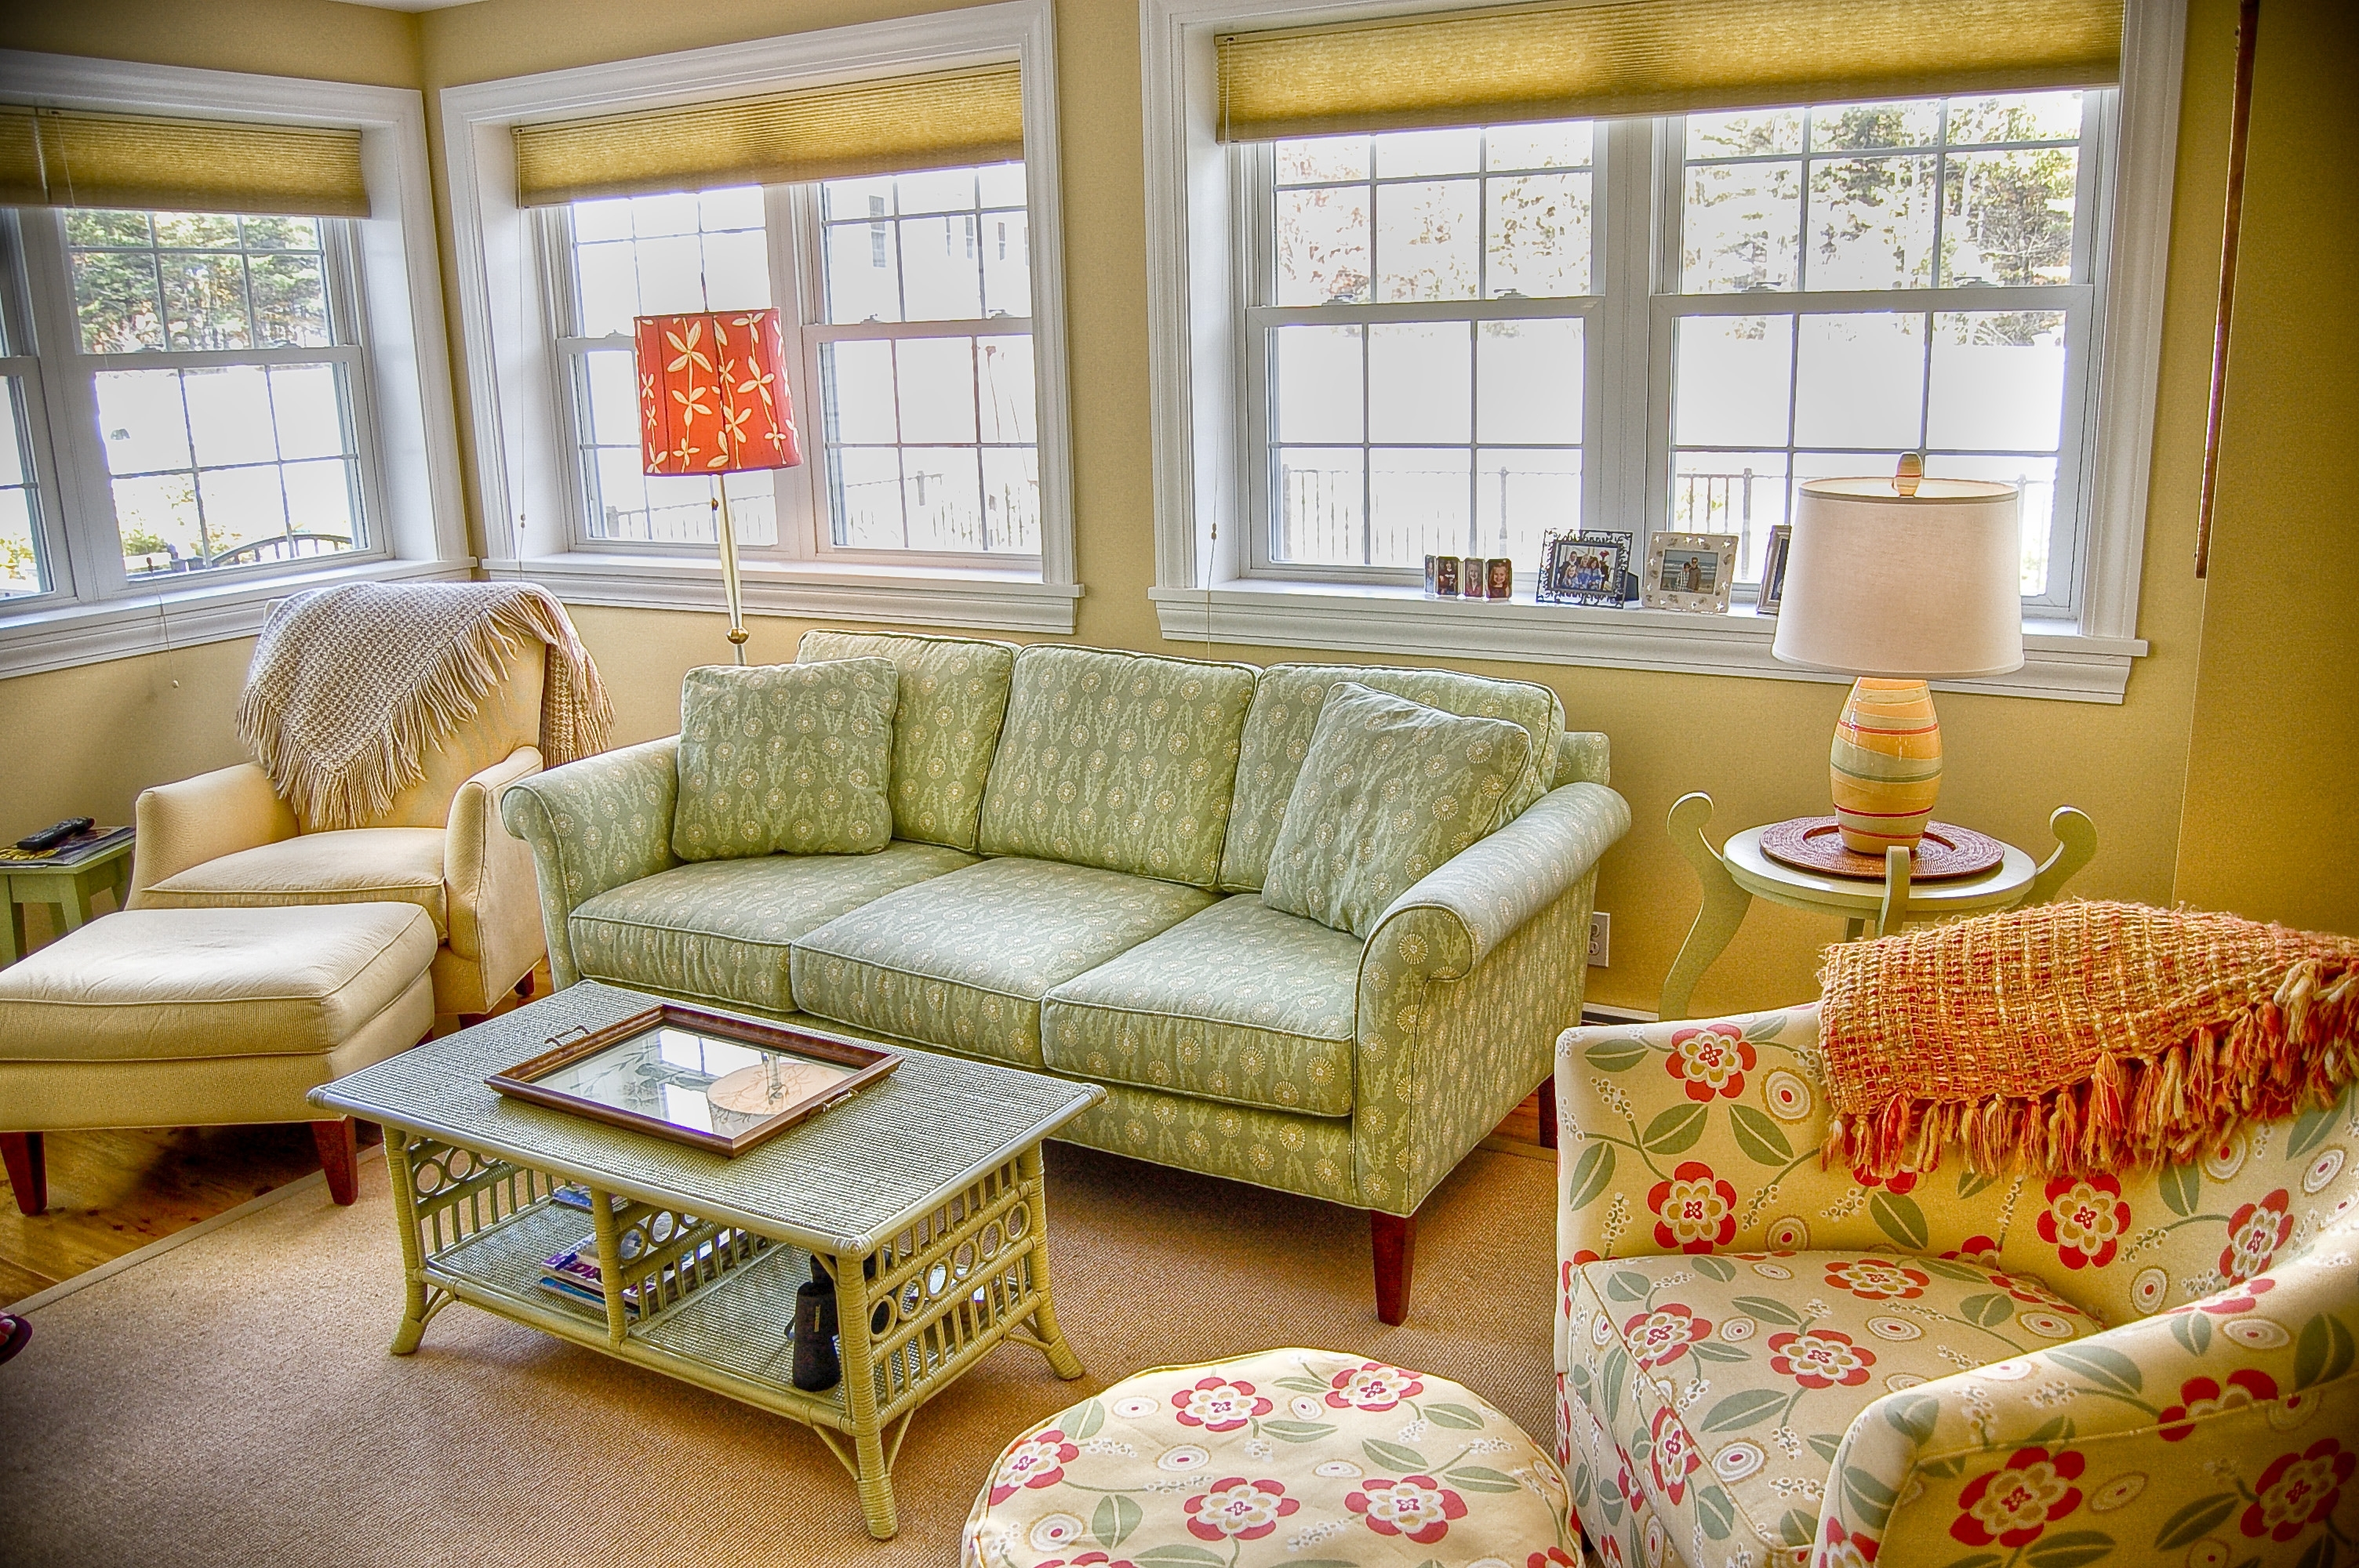 Well Liked Cottage Style Sofas And Chairs With Living Room : Cottage Furniture In Living Room Beautiful Photo 40+ (View 14 of 15)